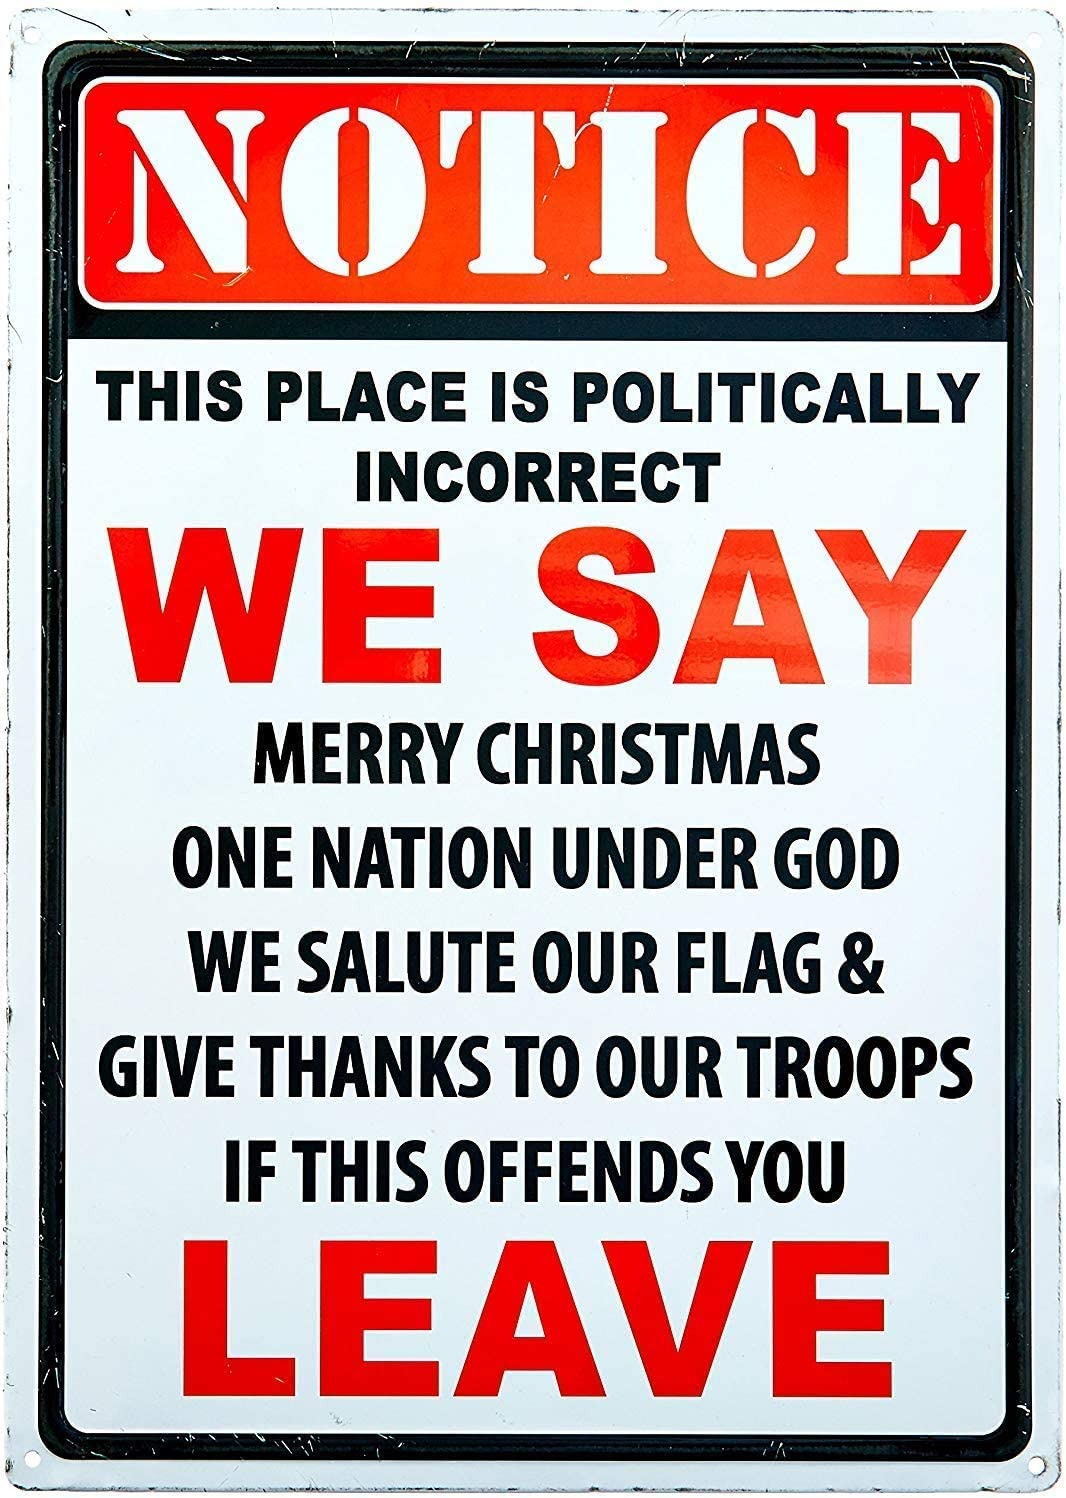 heather trujillo Notice This Place is Politically Incorrect If This Offends You Leave Metal Sign 8x12 Indoor Outdoor